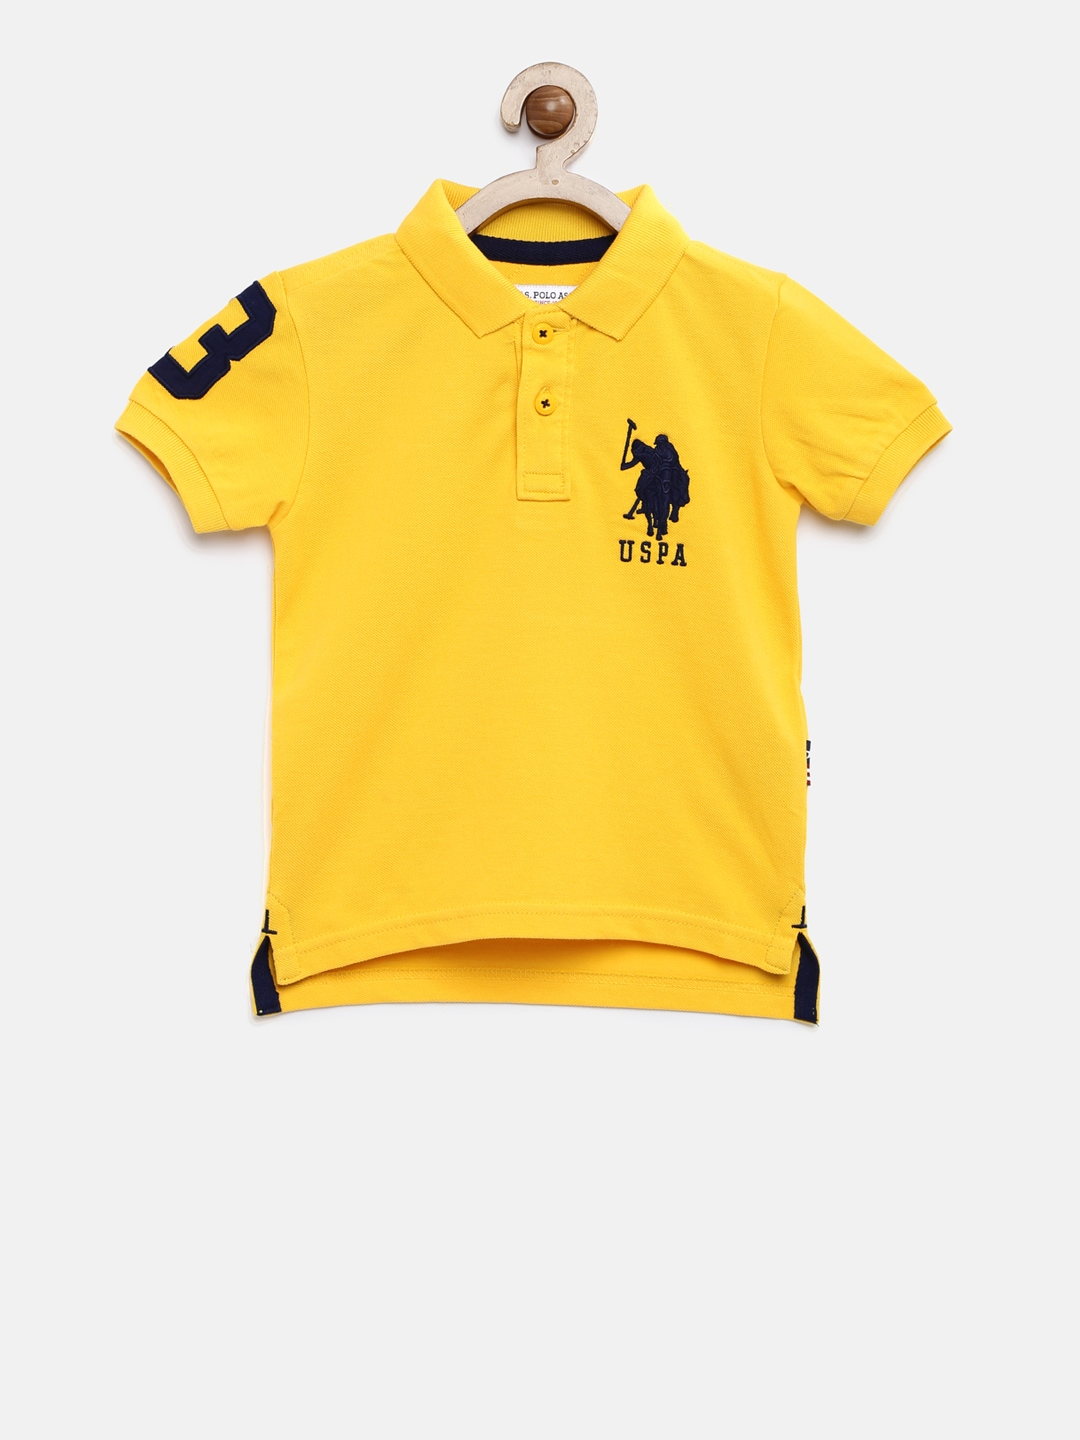 e631646f6a5 Yellow Polo Tshirts - Buy Yellow Polo Tshirts online in India